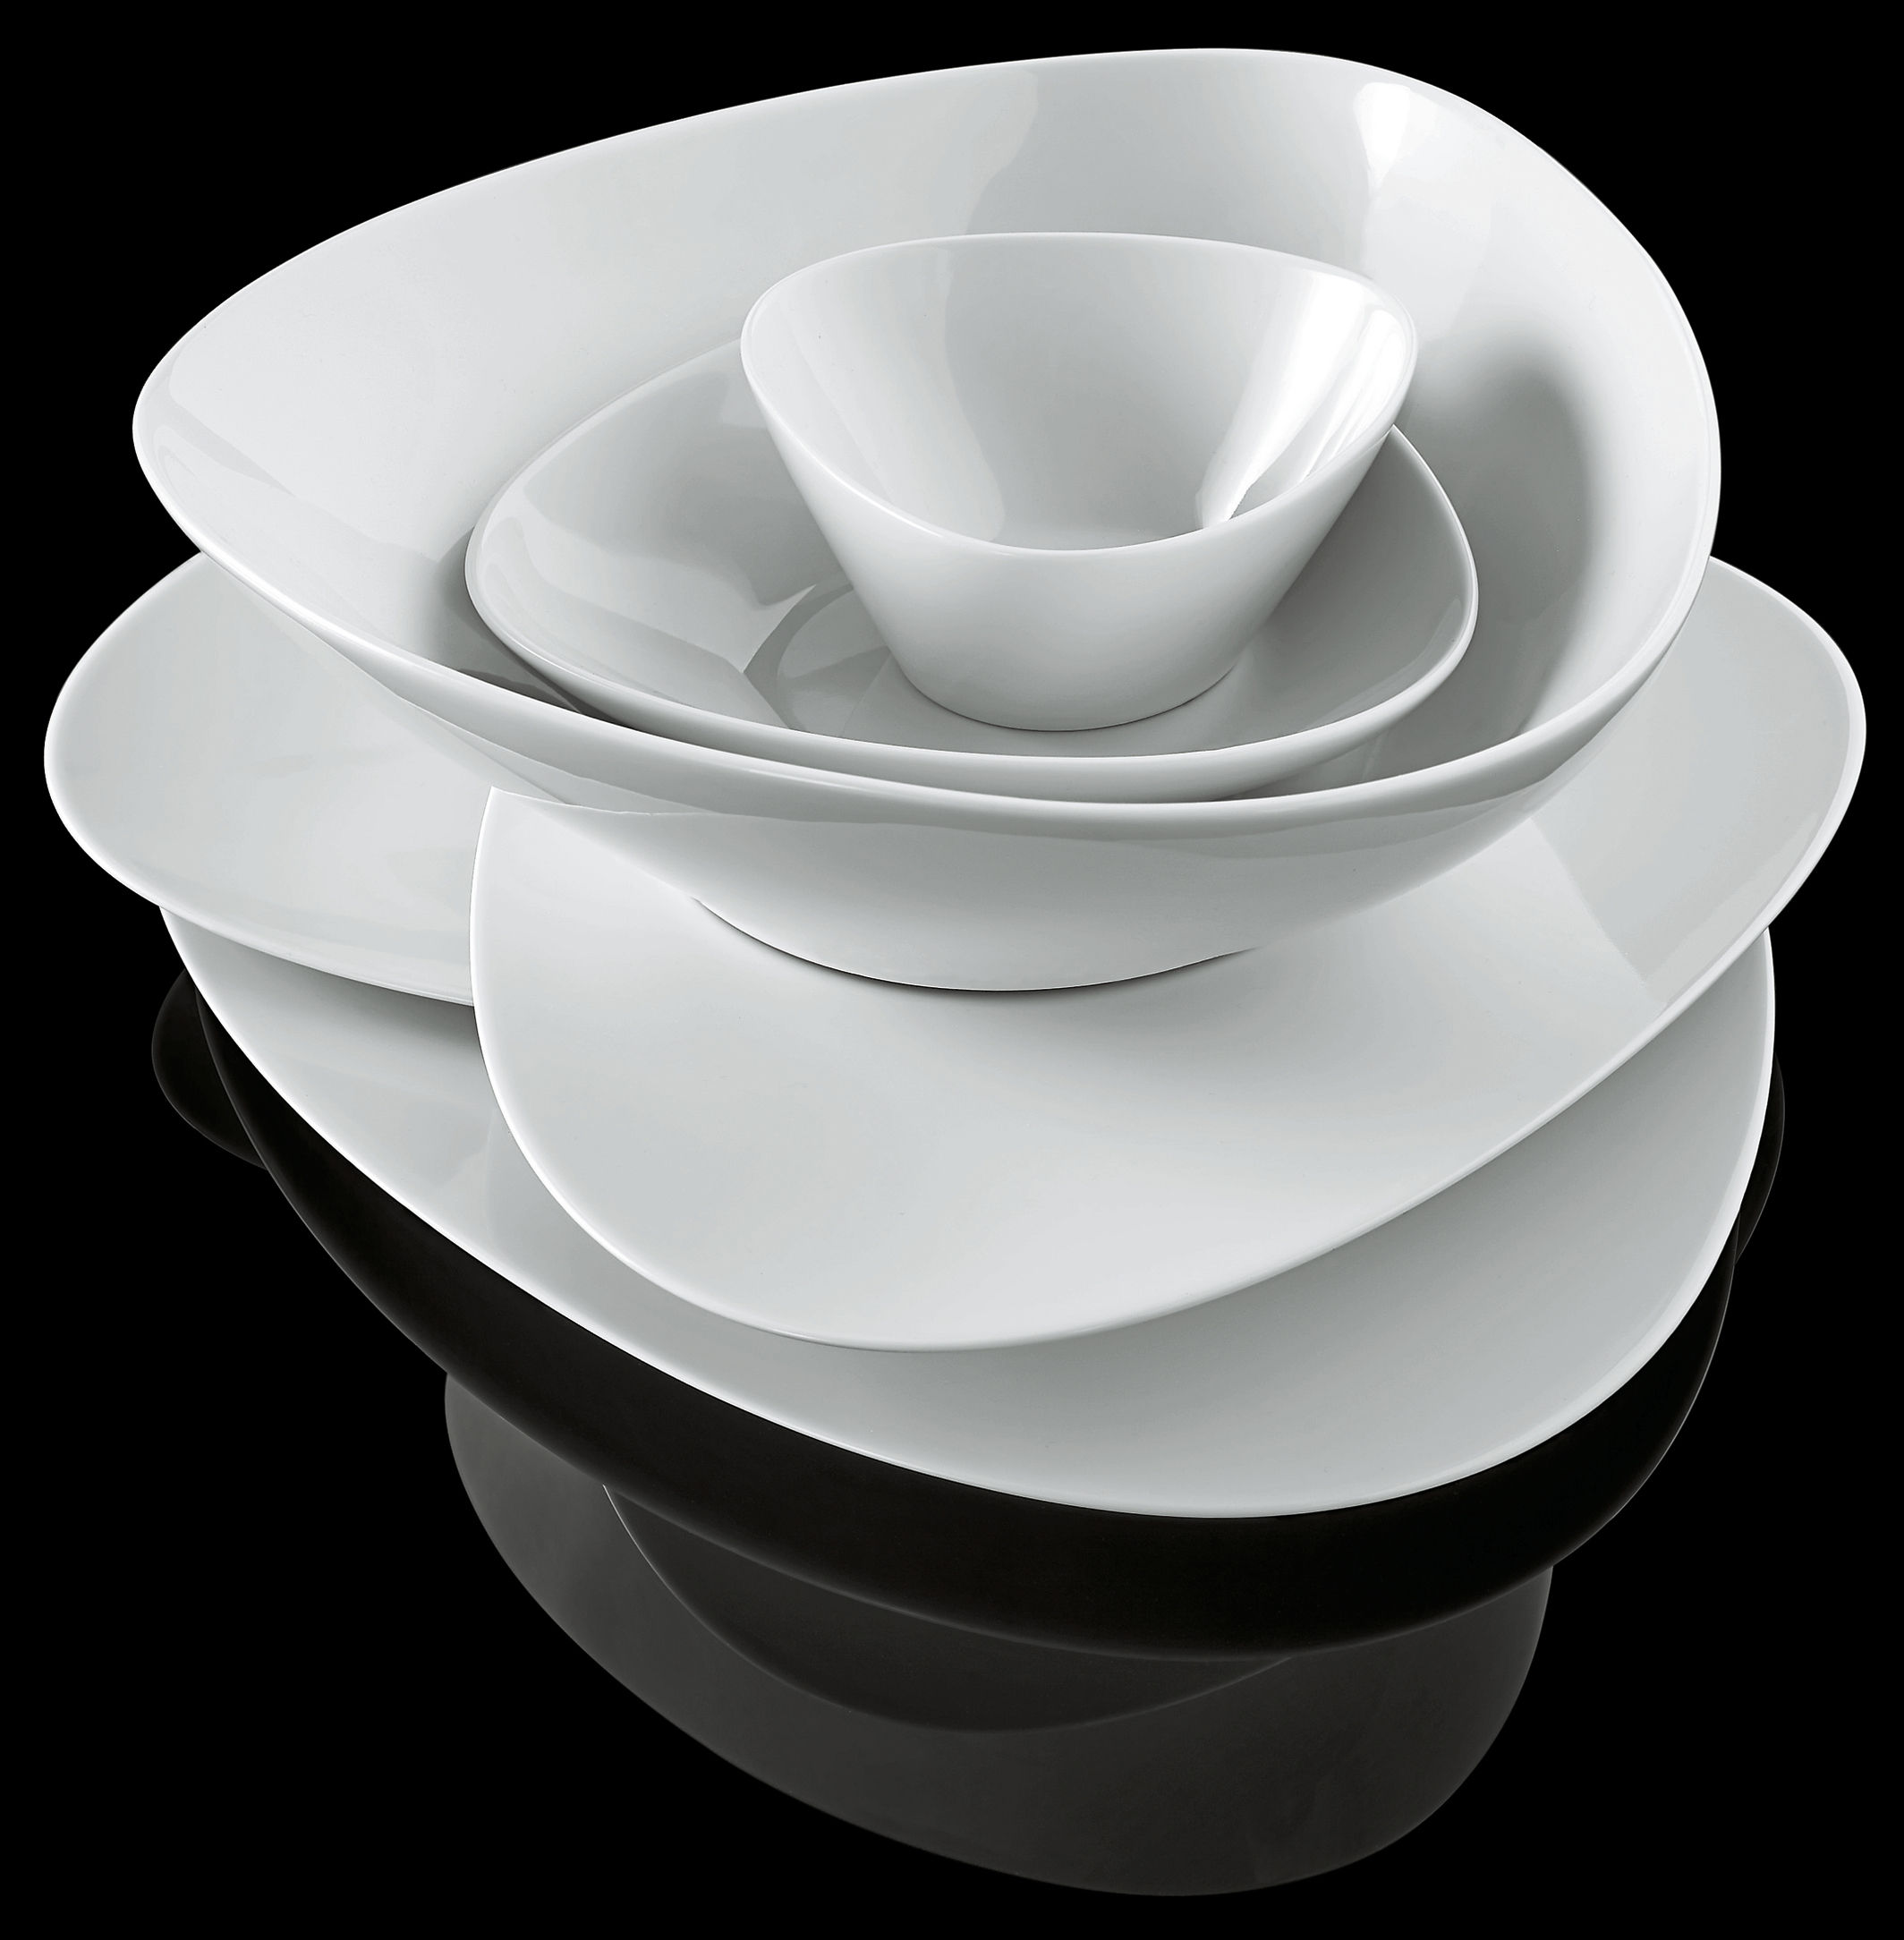 alessi colombina colombina collection table sets alessi fm web  - edbedebe colombina dessert plate white by alessi